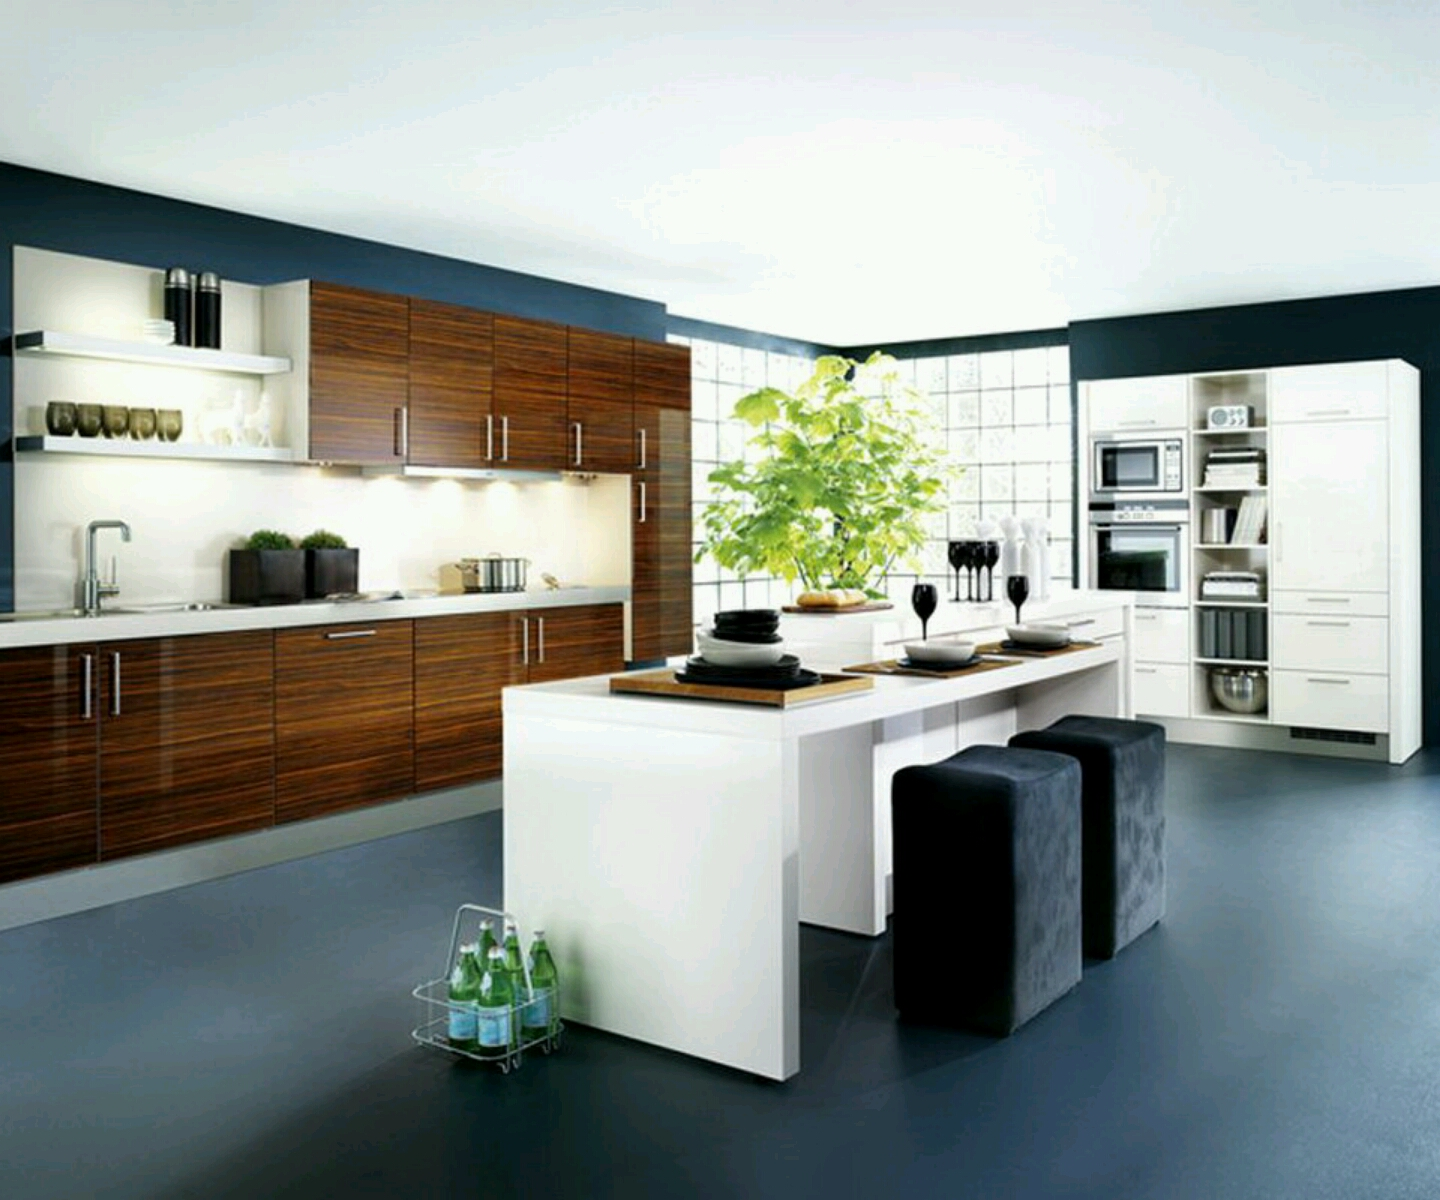 New home designs latest kitchen cabinets designs modern for Home ideas kitchen